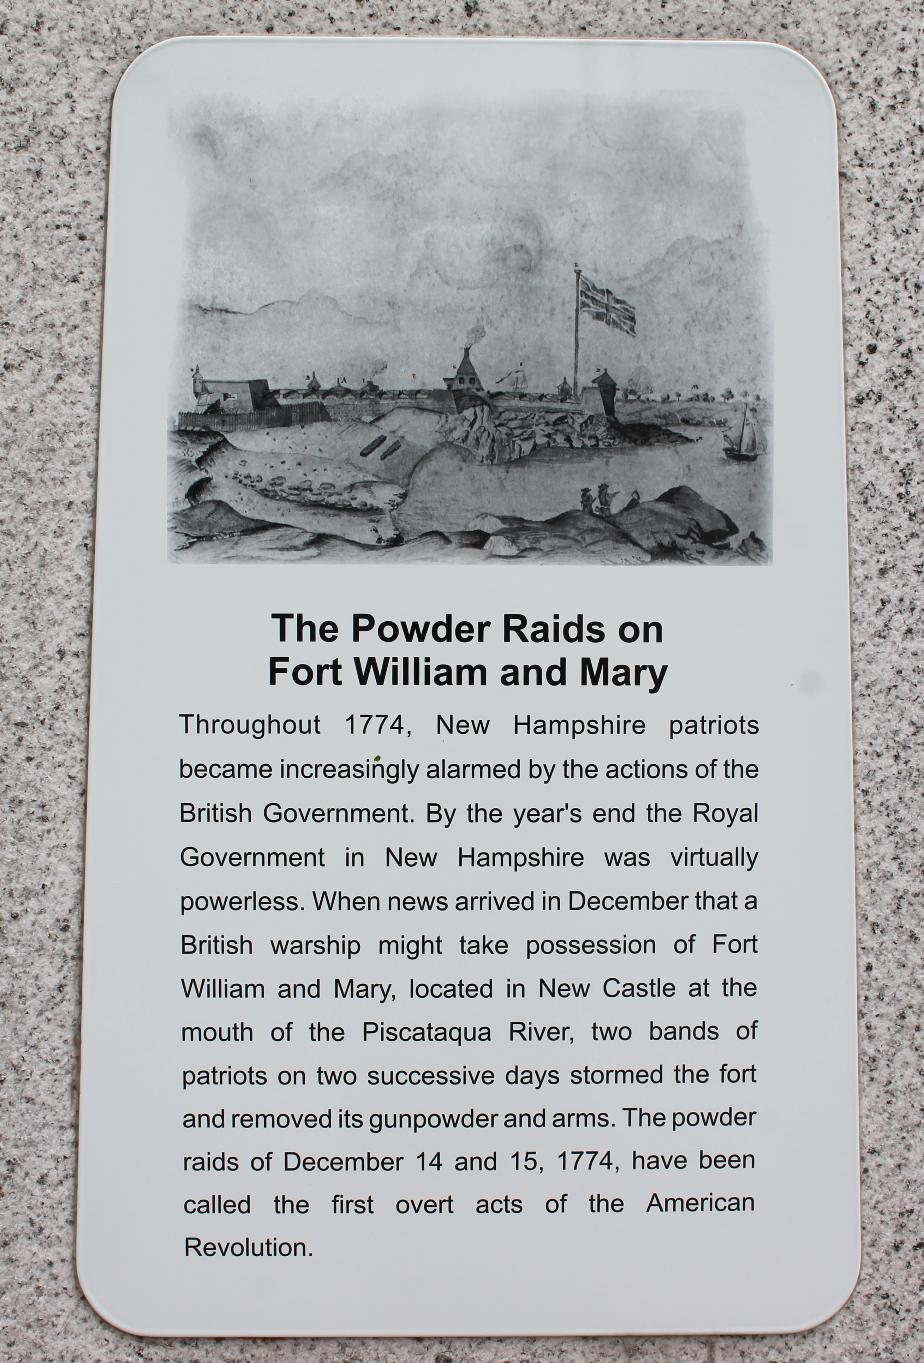 NH State Veterans Cemetery - The Powder Raids on Fort William & Mary